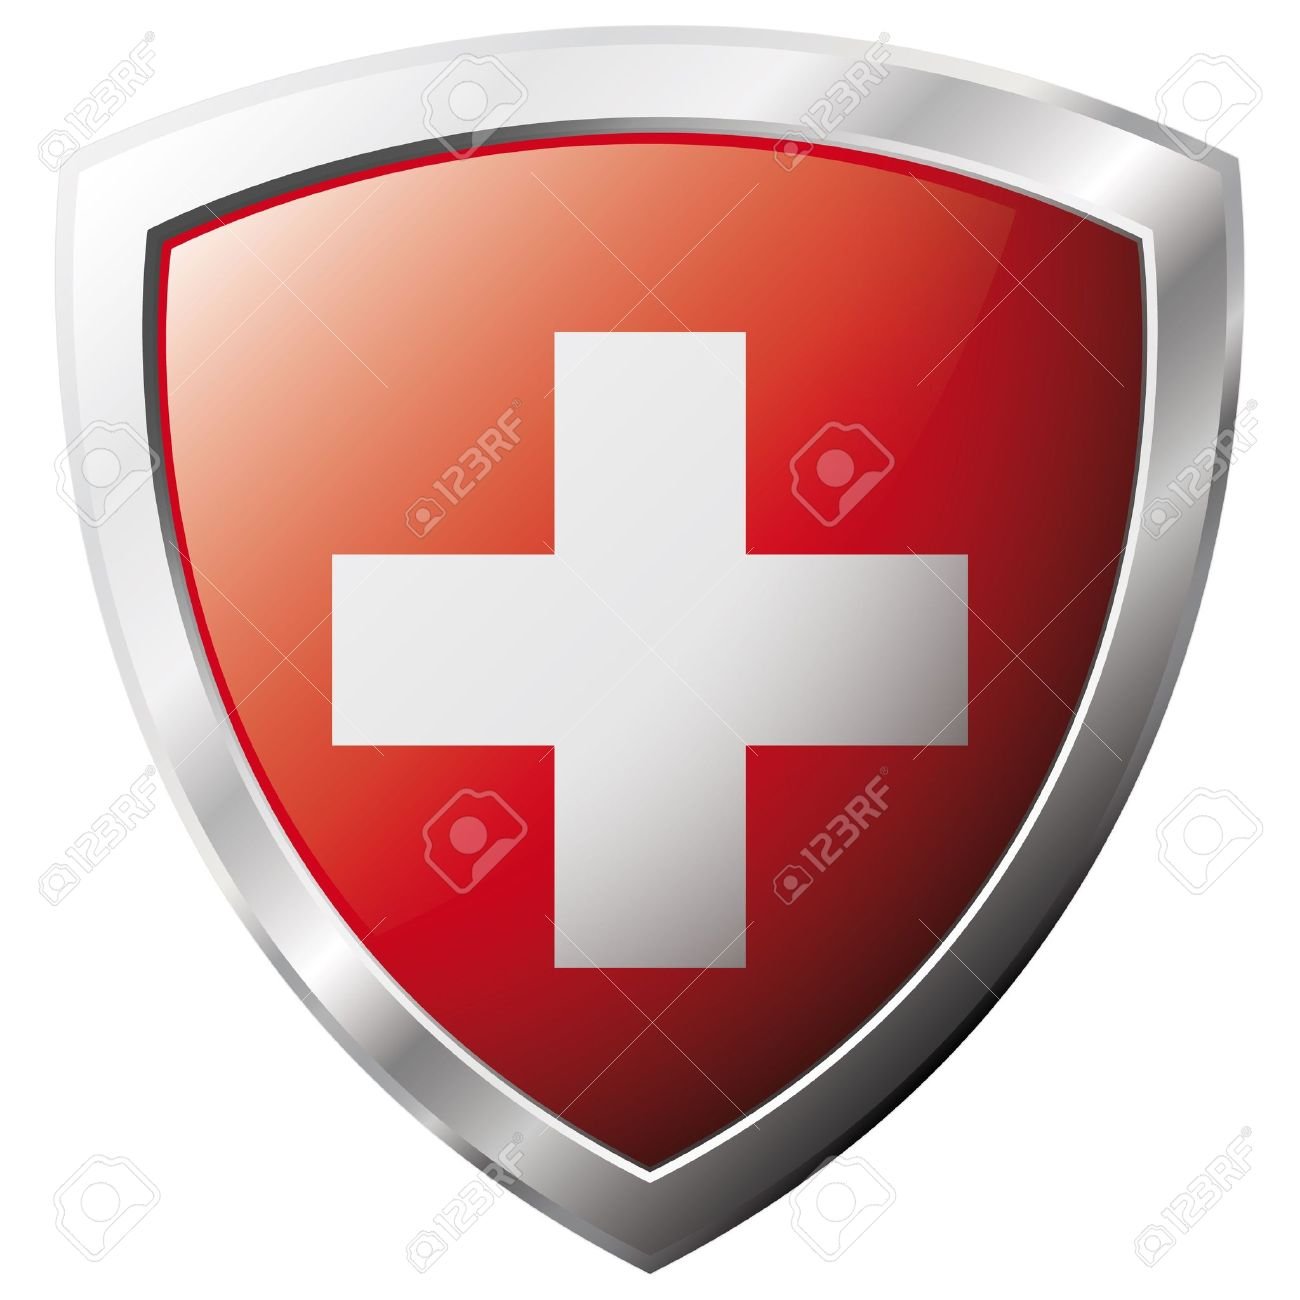 Swiss flag on metal shiny shield vector illustration. Collection of flags on shield against white background. Abstract isolated object. Stock Vector - 6906201